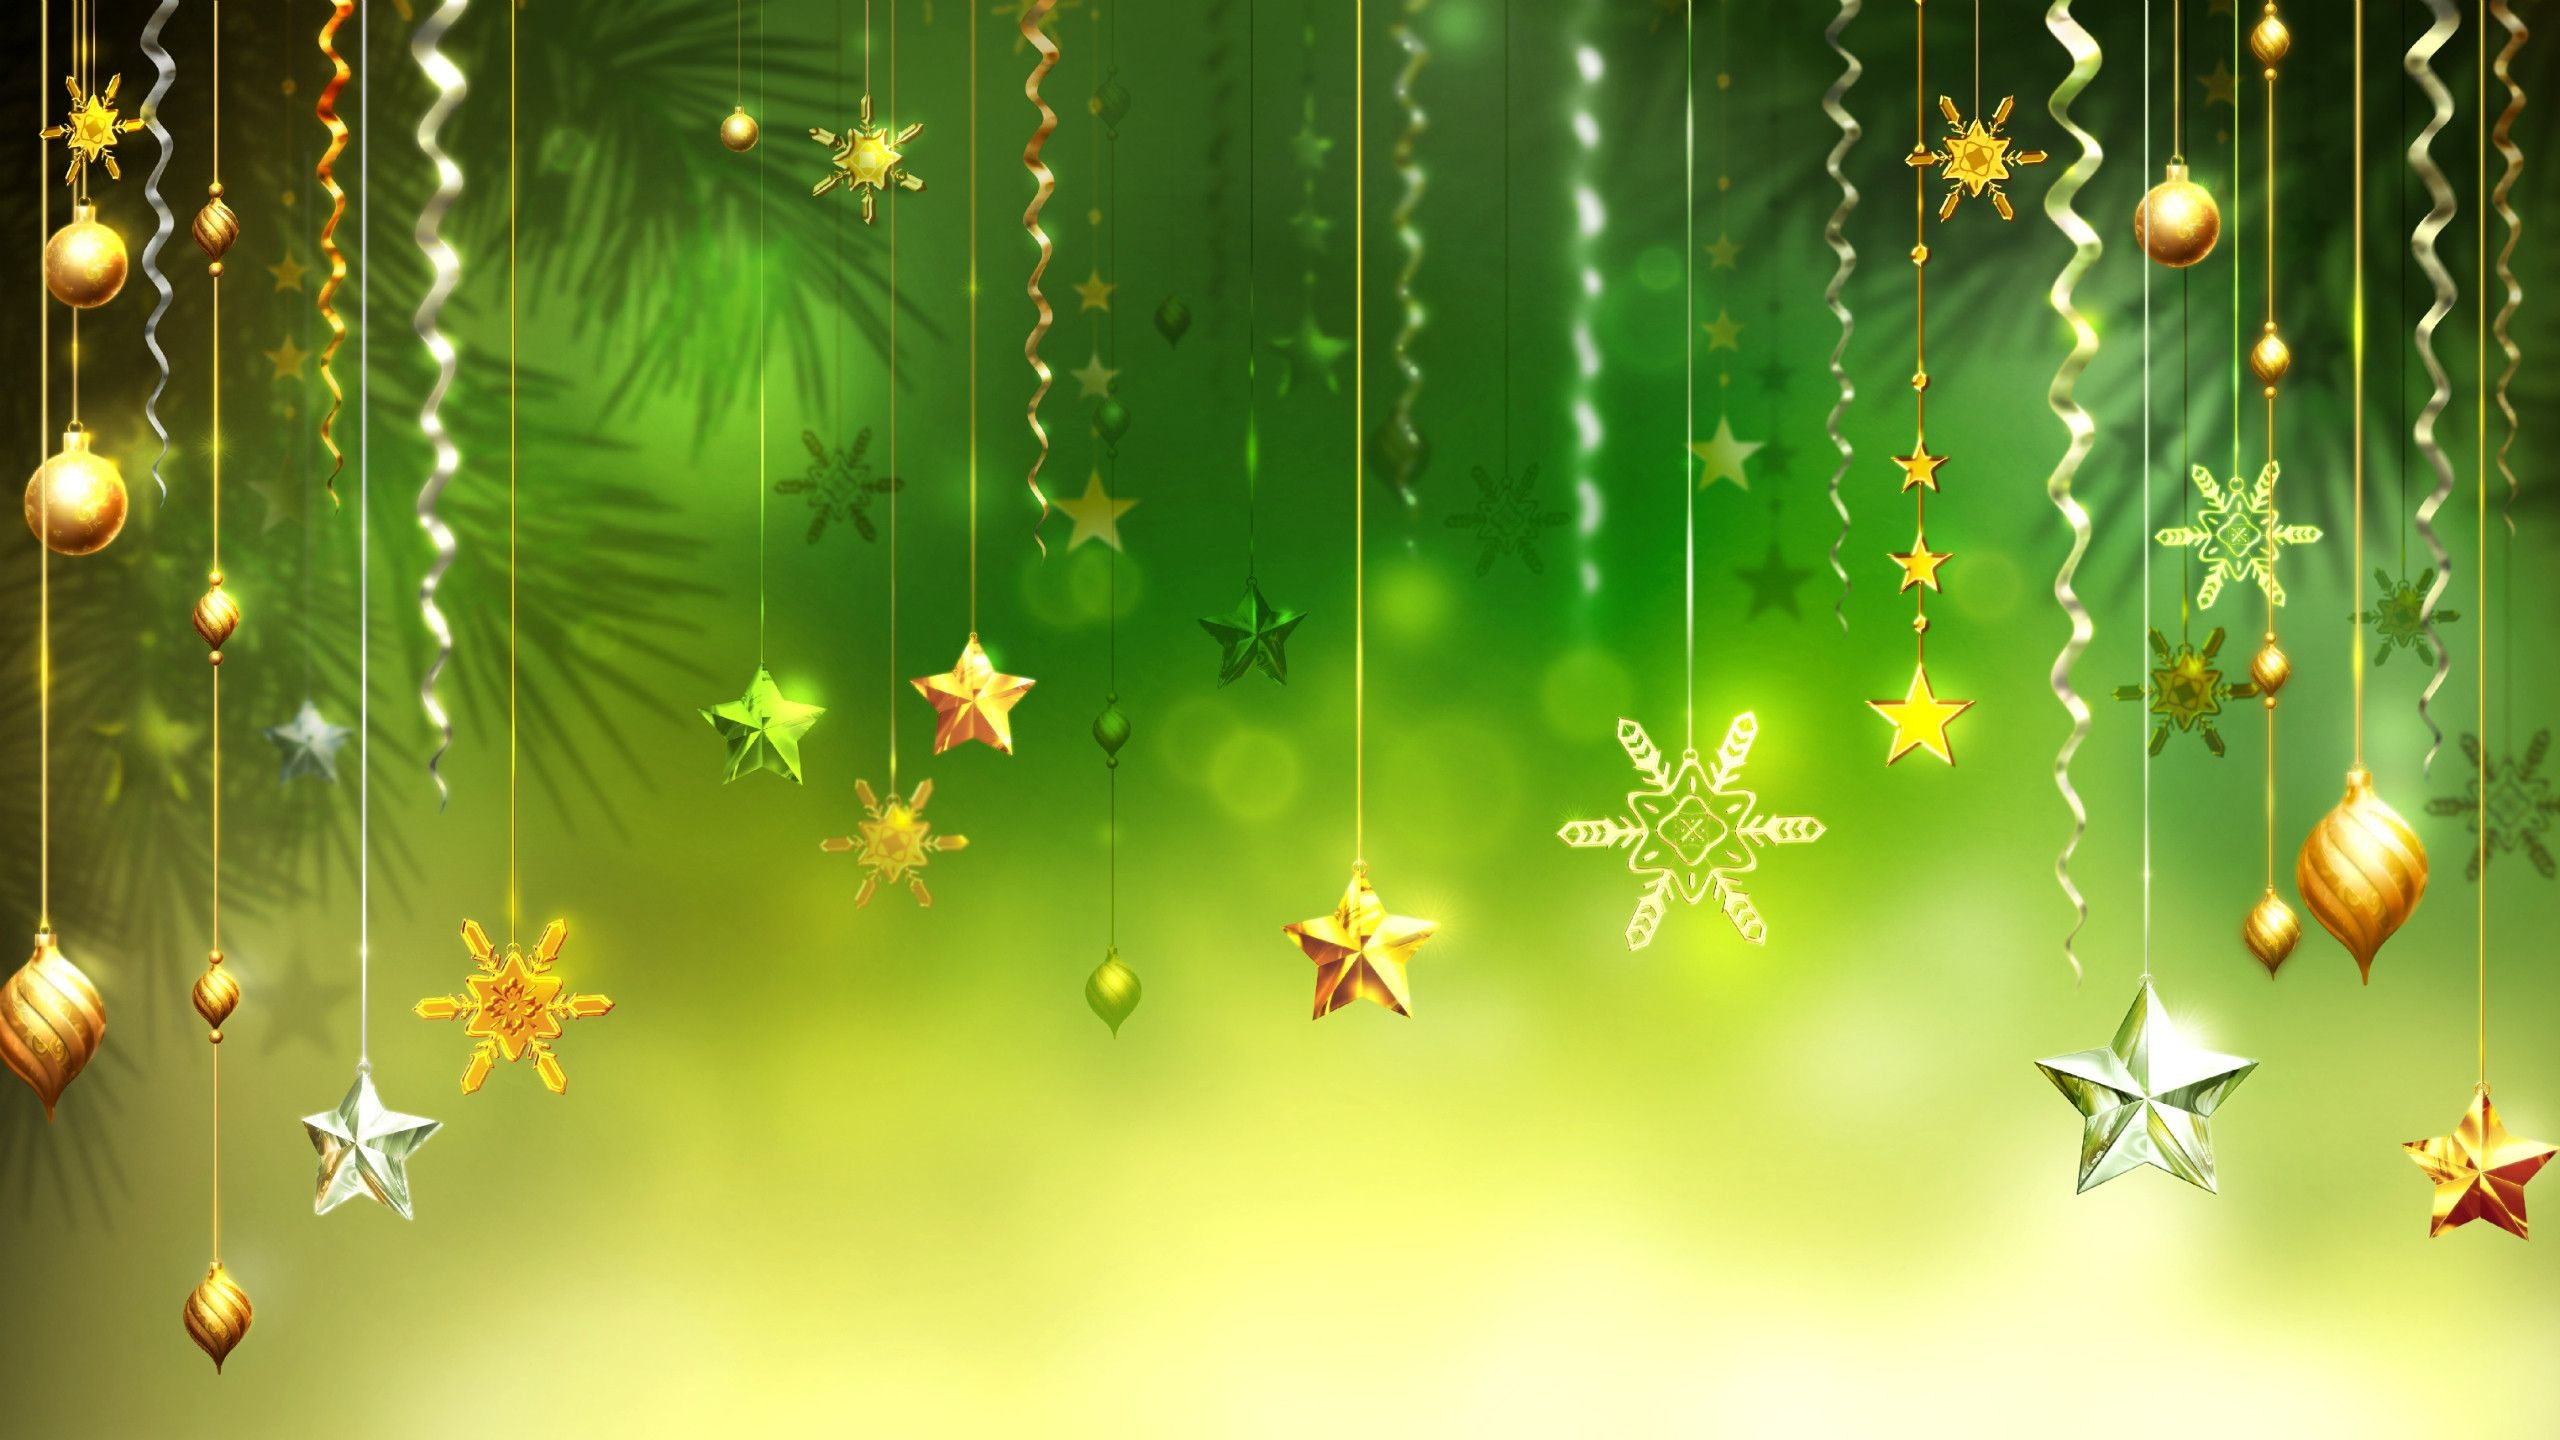 2015 christmas background – wallpapers, images, photos, pictures .